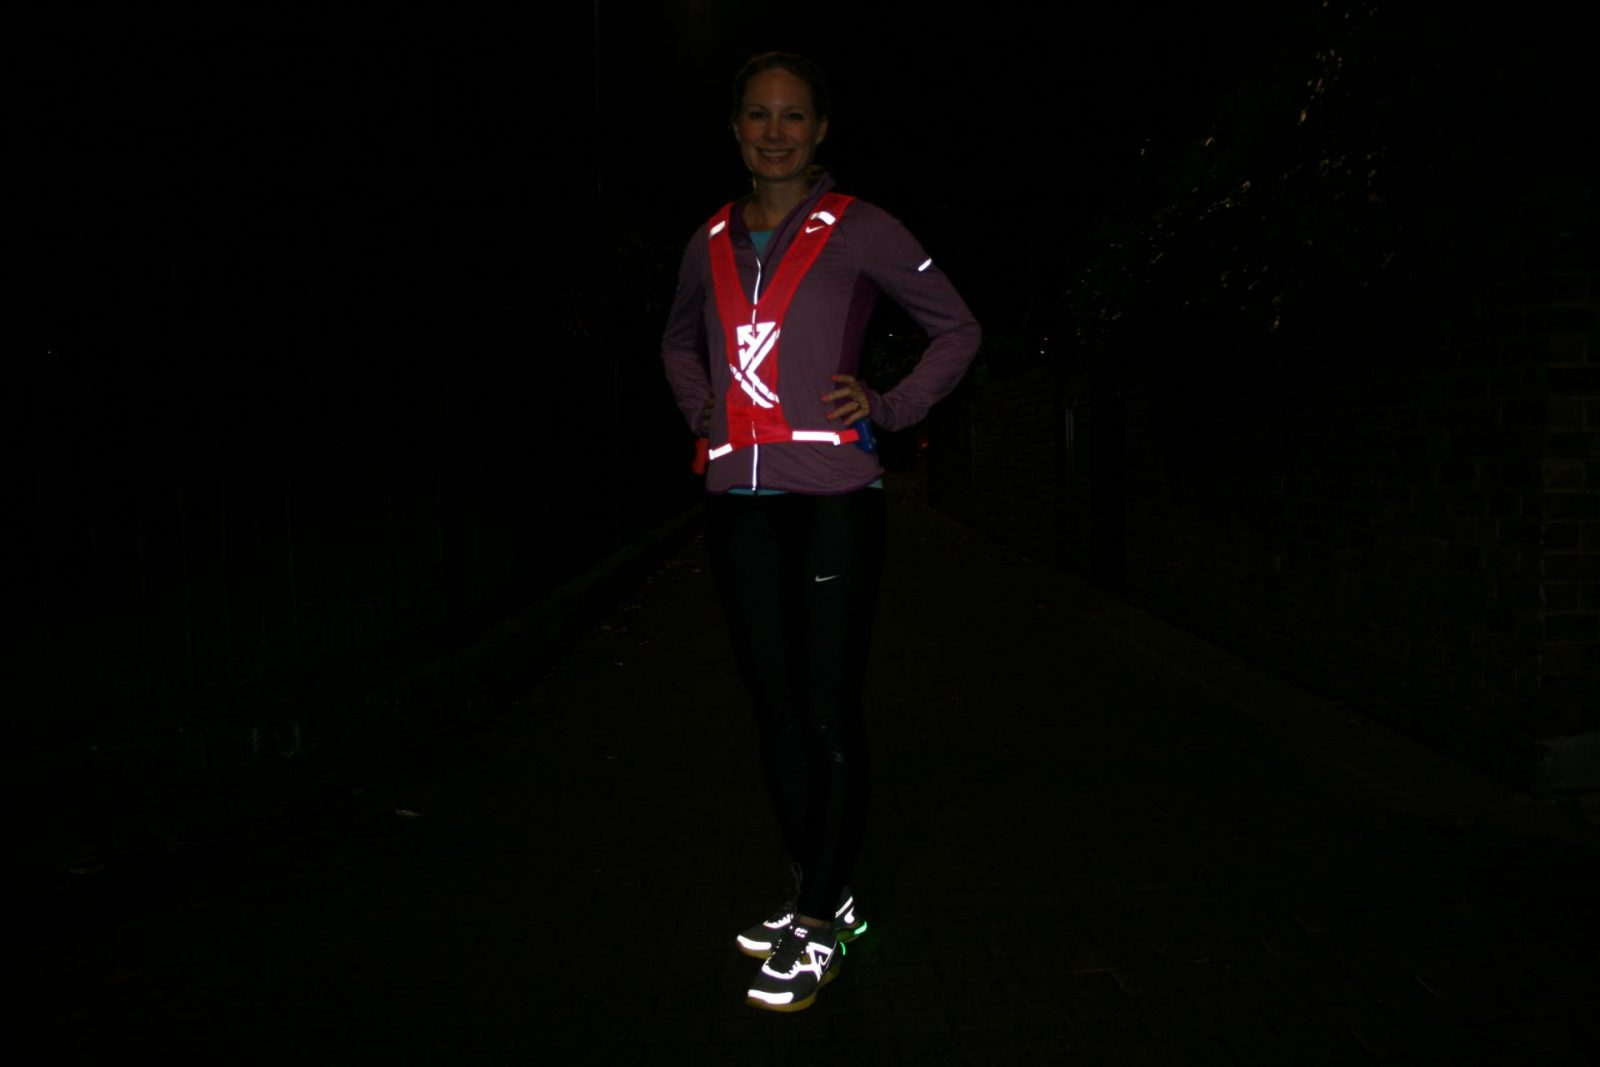 High visibility running kit